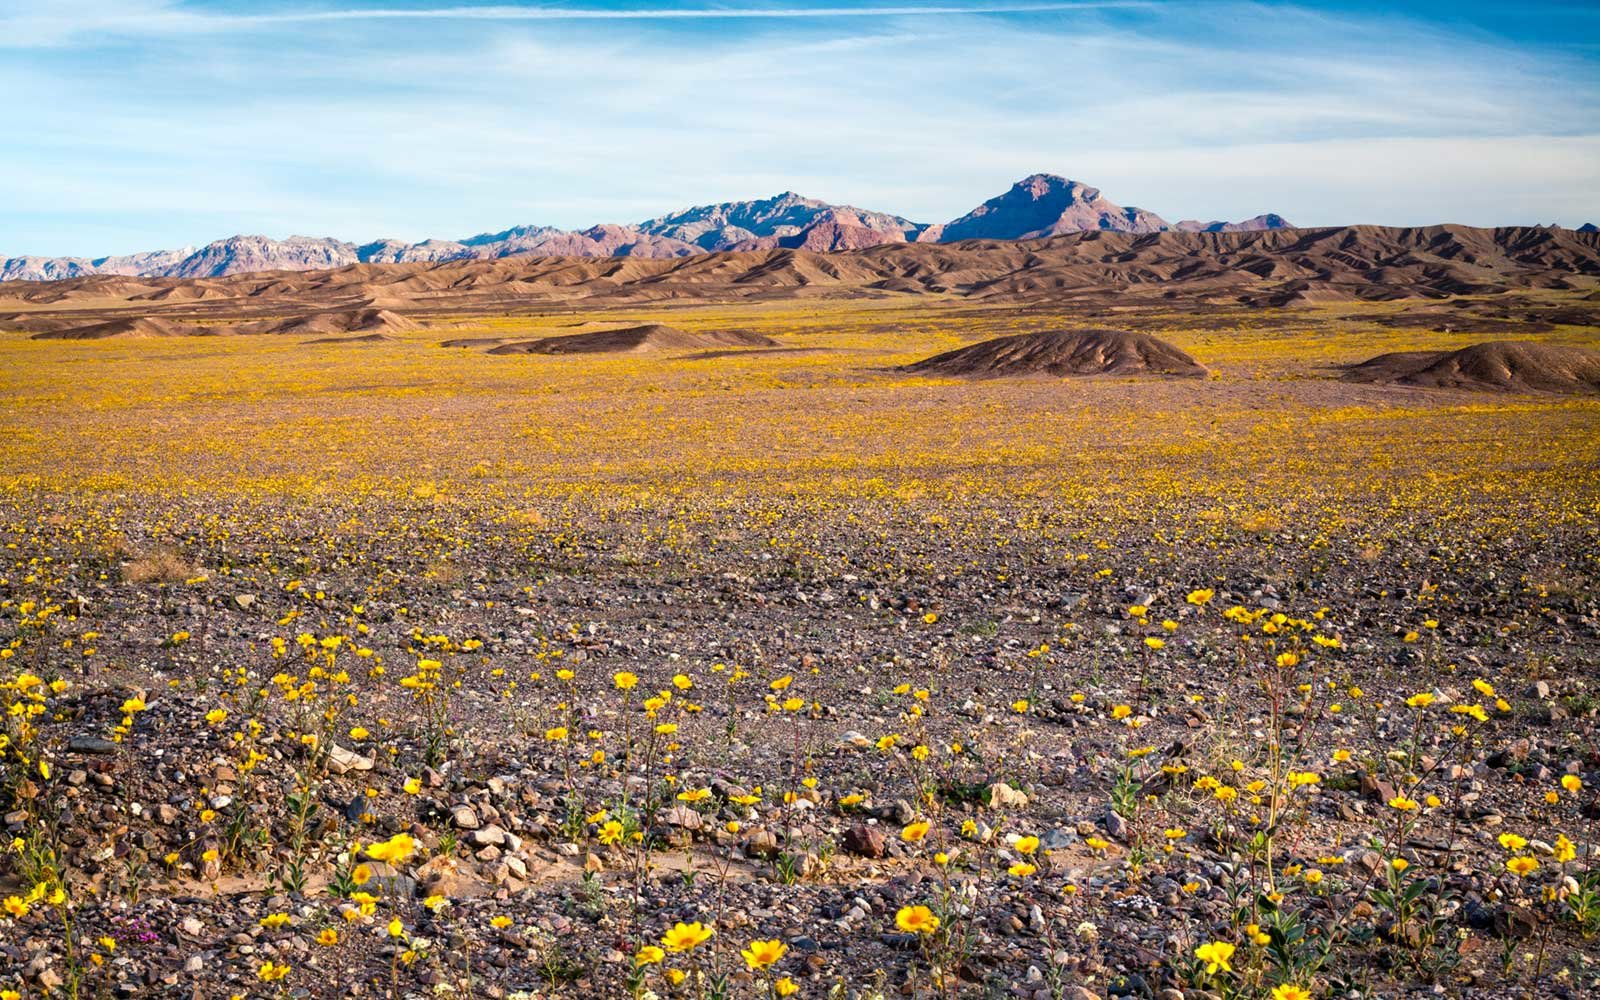 Wildflowers, Super Bloom, Spring 2016, Amargosa Mountains, Death Valley National Park